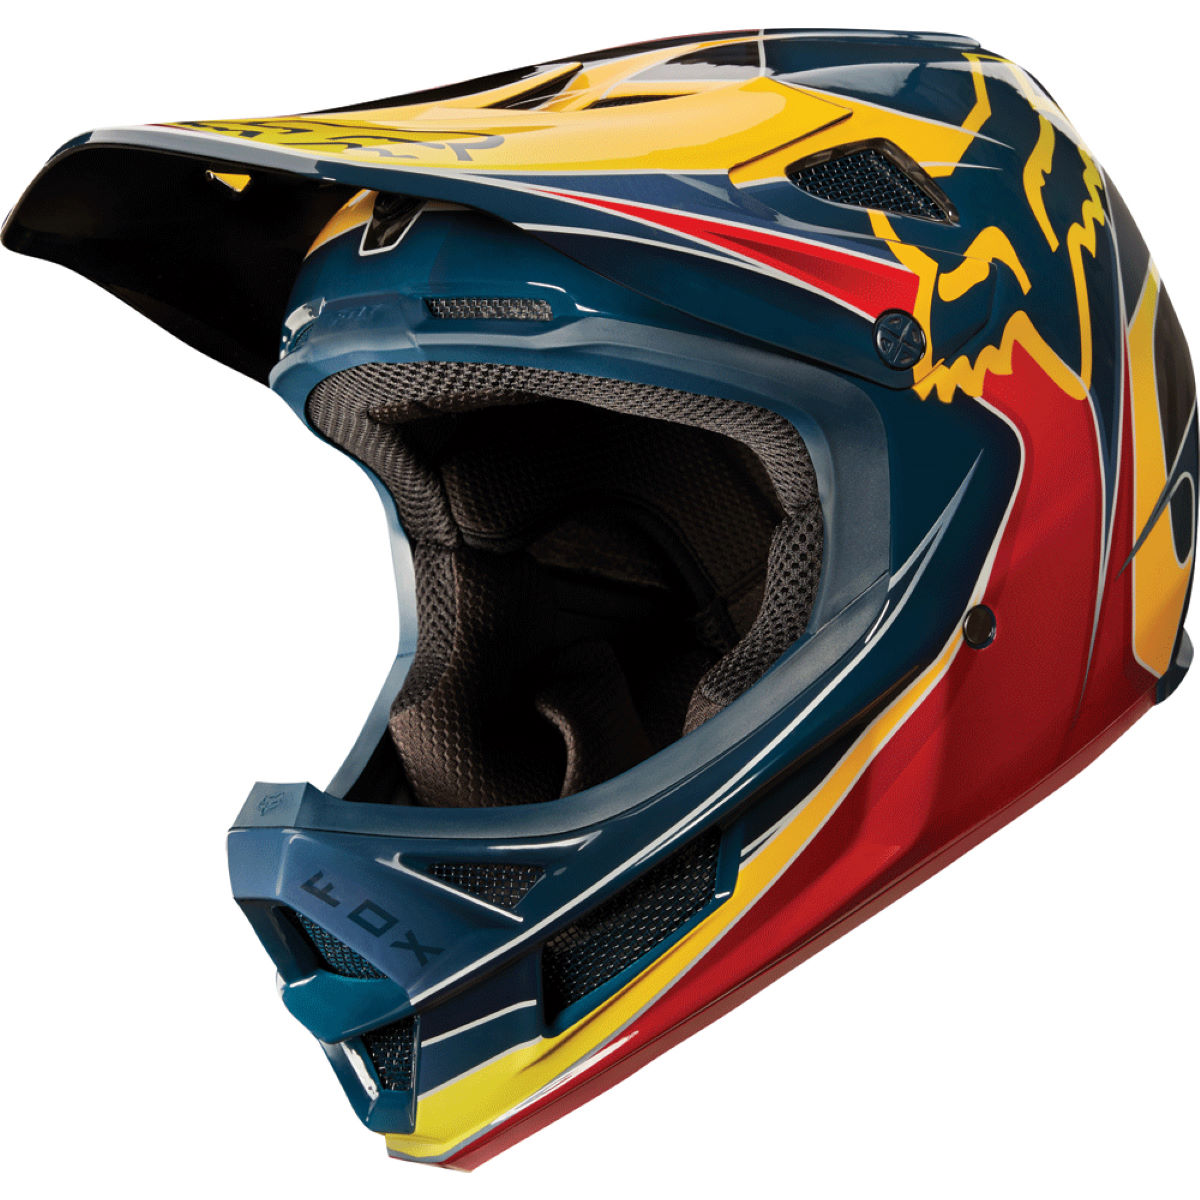 Casco Fox Racing Rampage Pro Carbon Kustom - Cascos